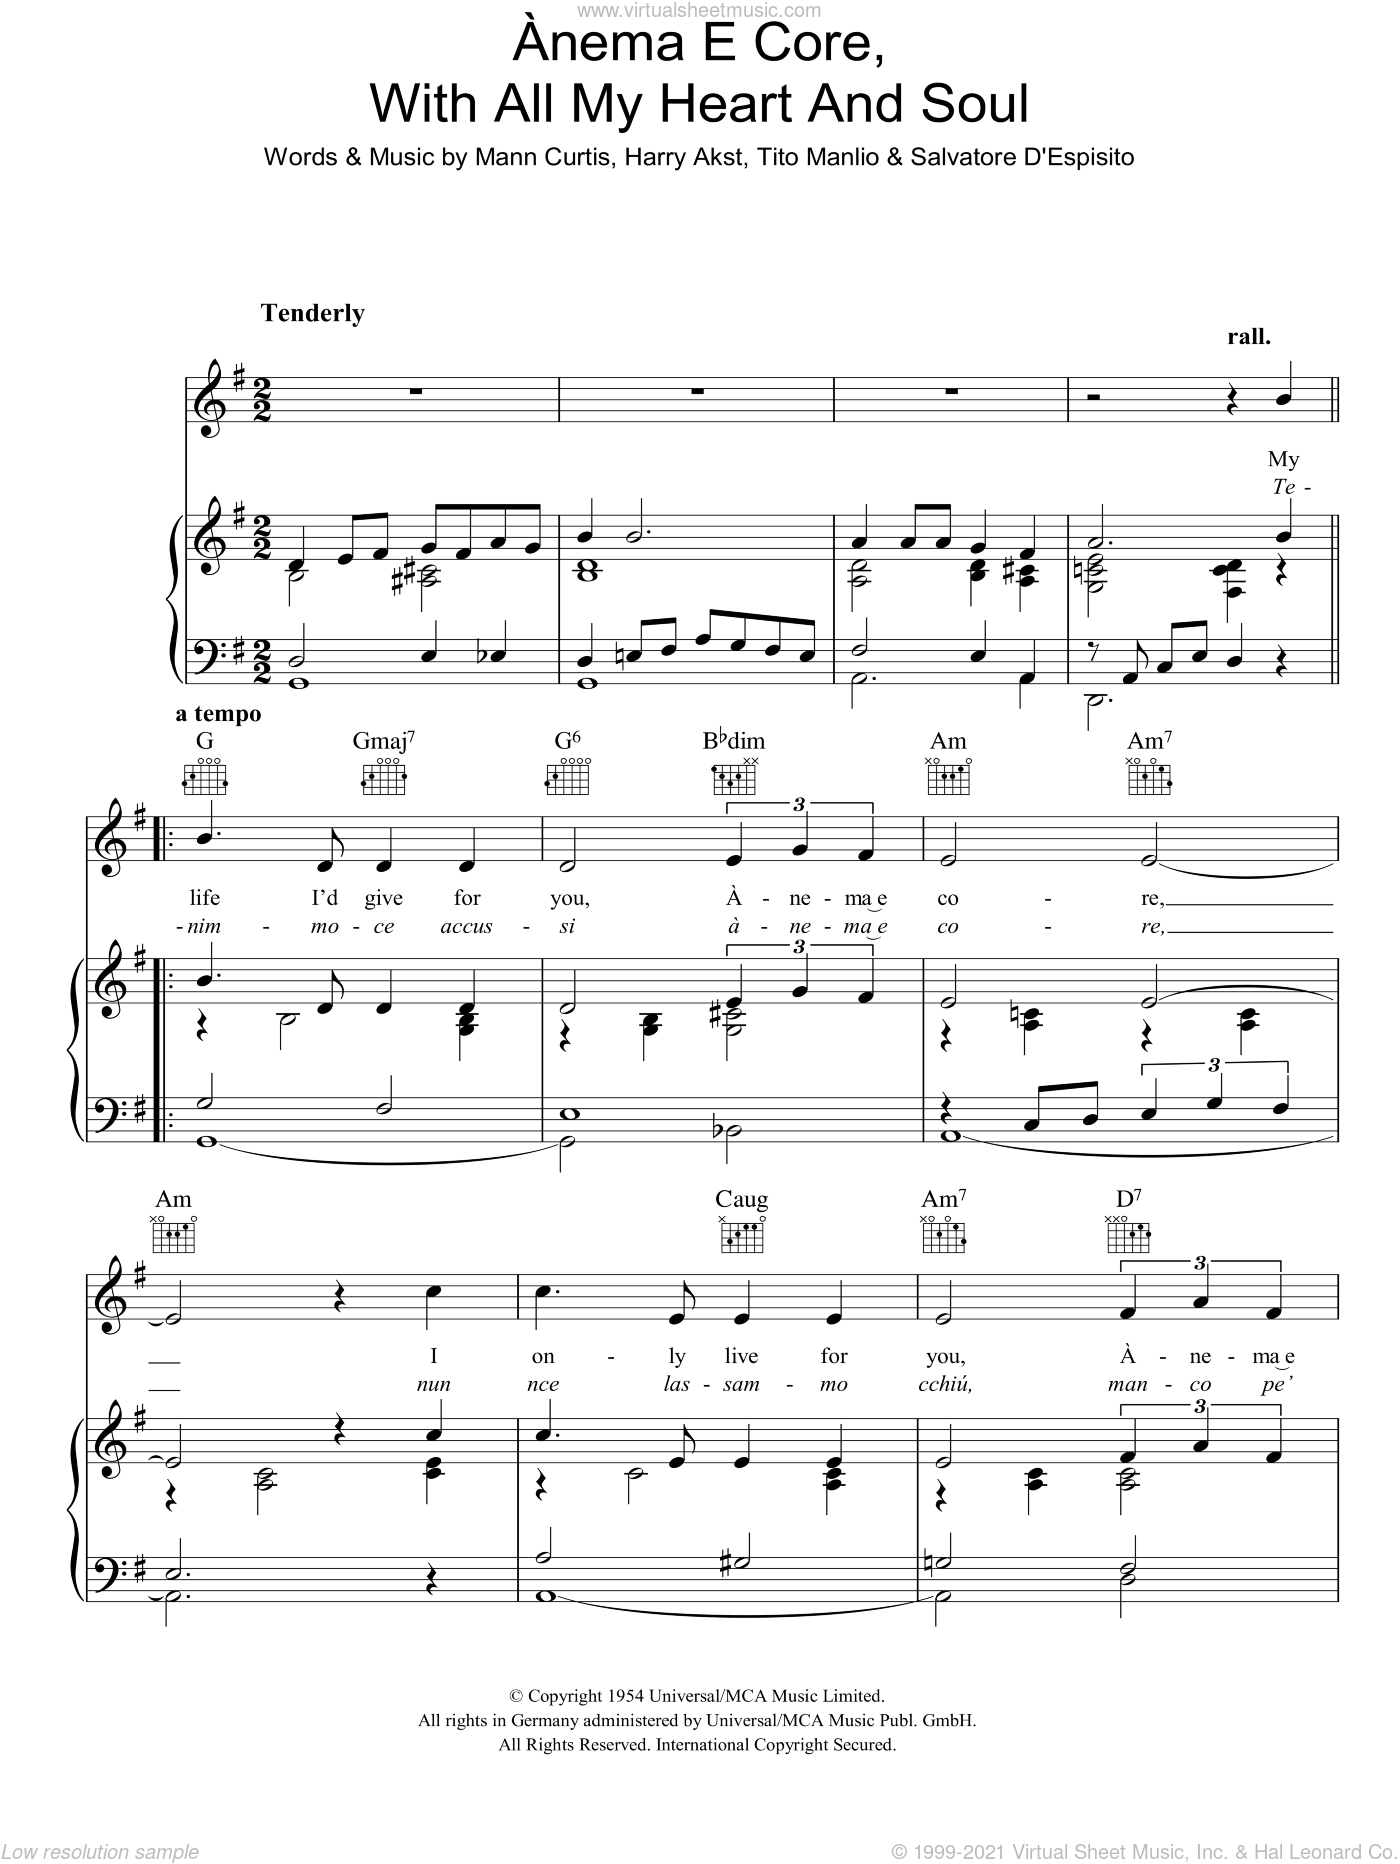 Anema E Core (With All My Heart And Soul) sheet music for voice, piano or guitar by Harry Akst